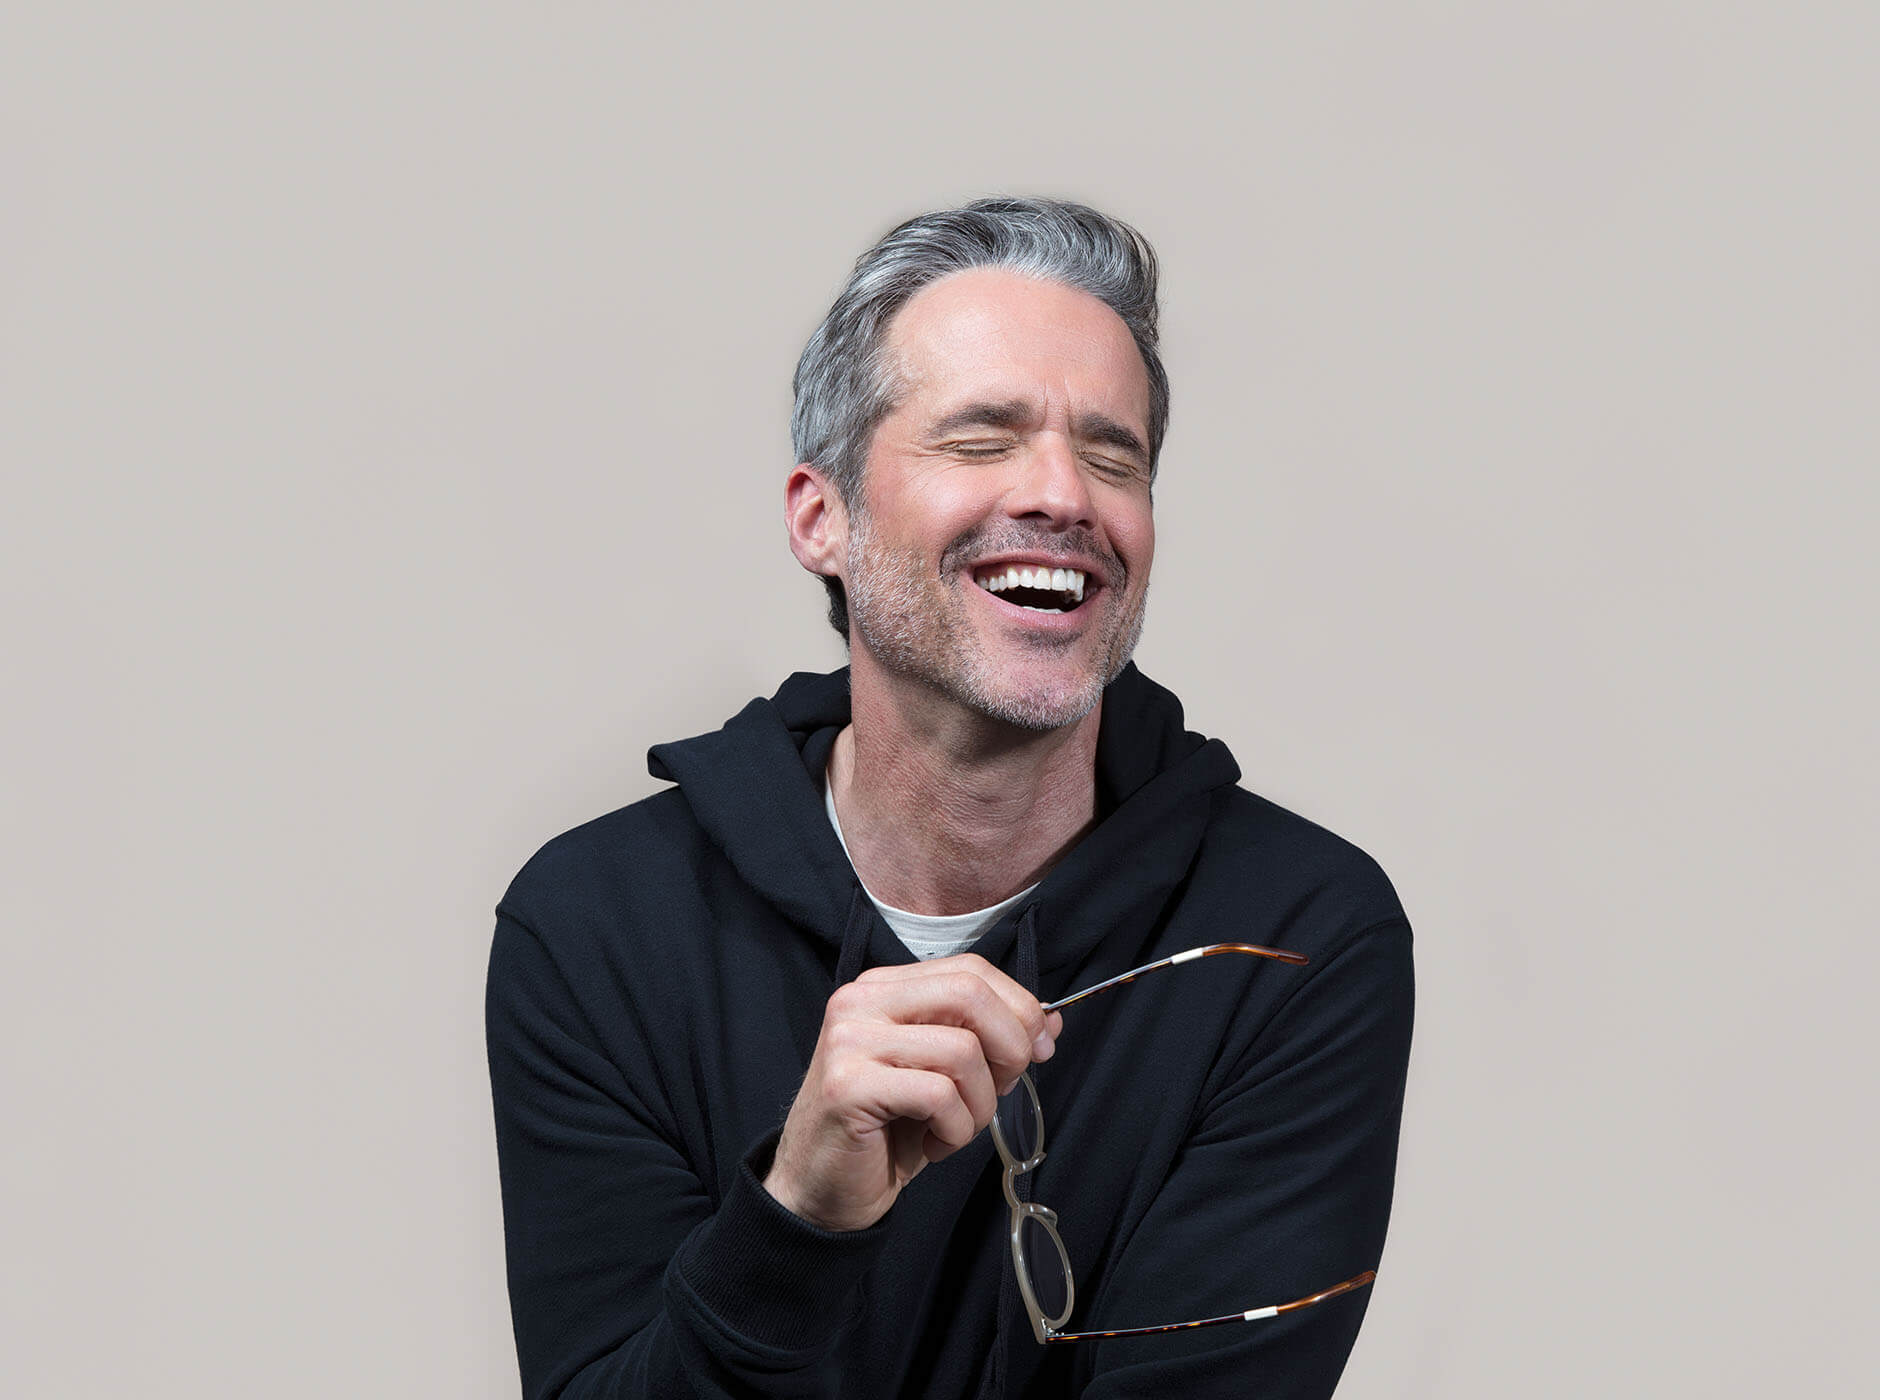 Man holding glasses laughing.